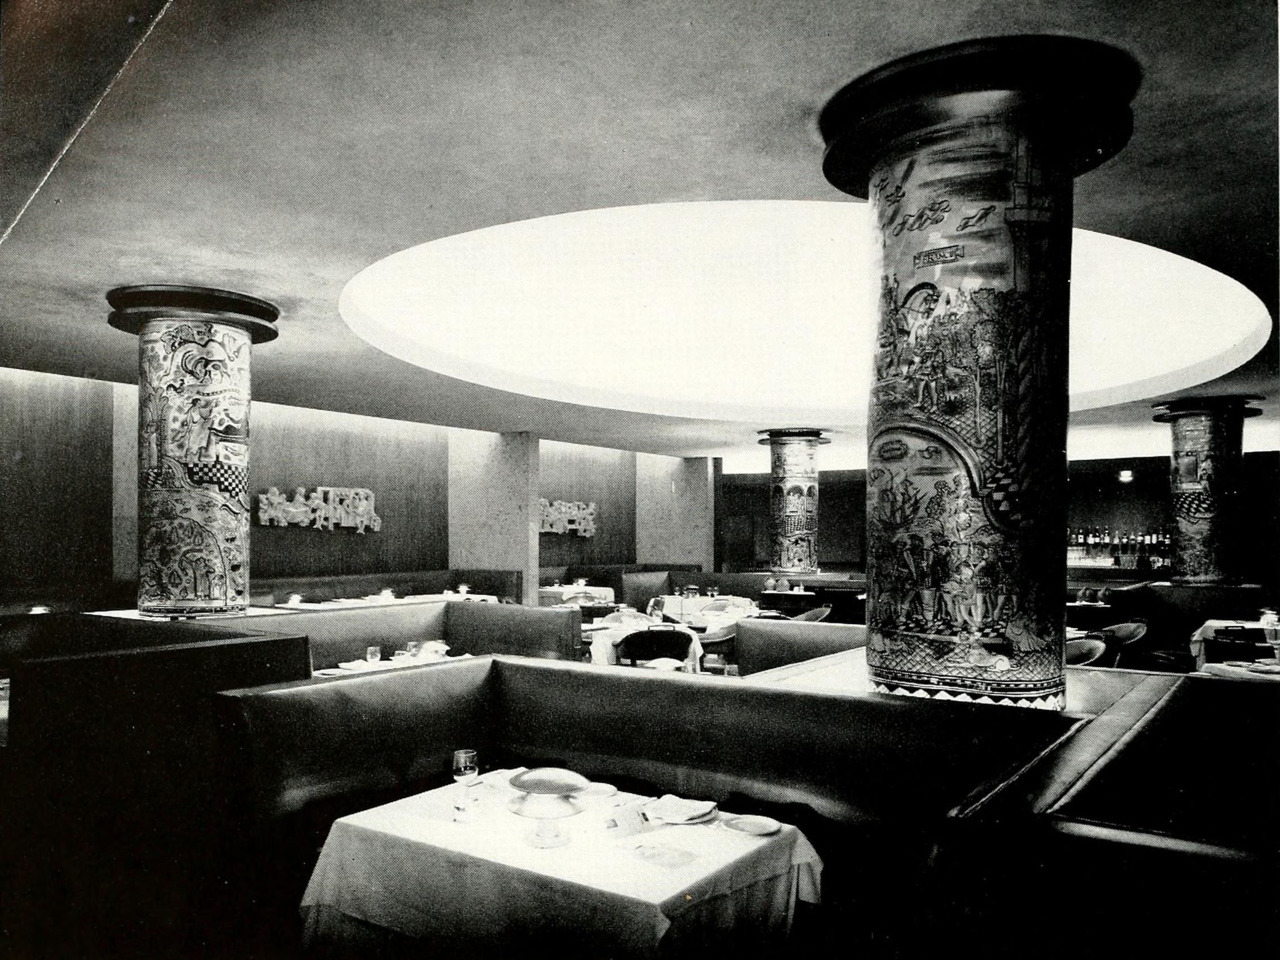 Inside the Grill of the Hotel Pierre, New York